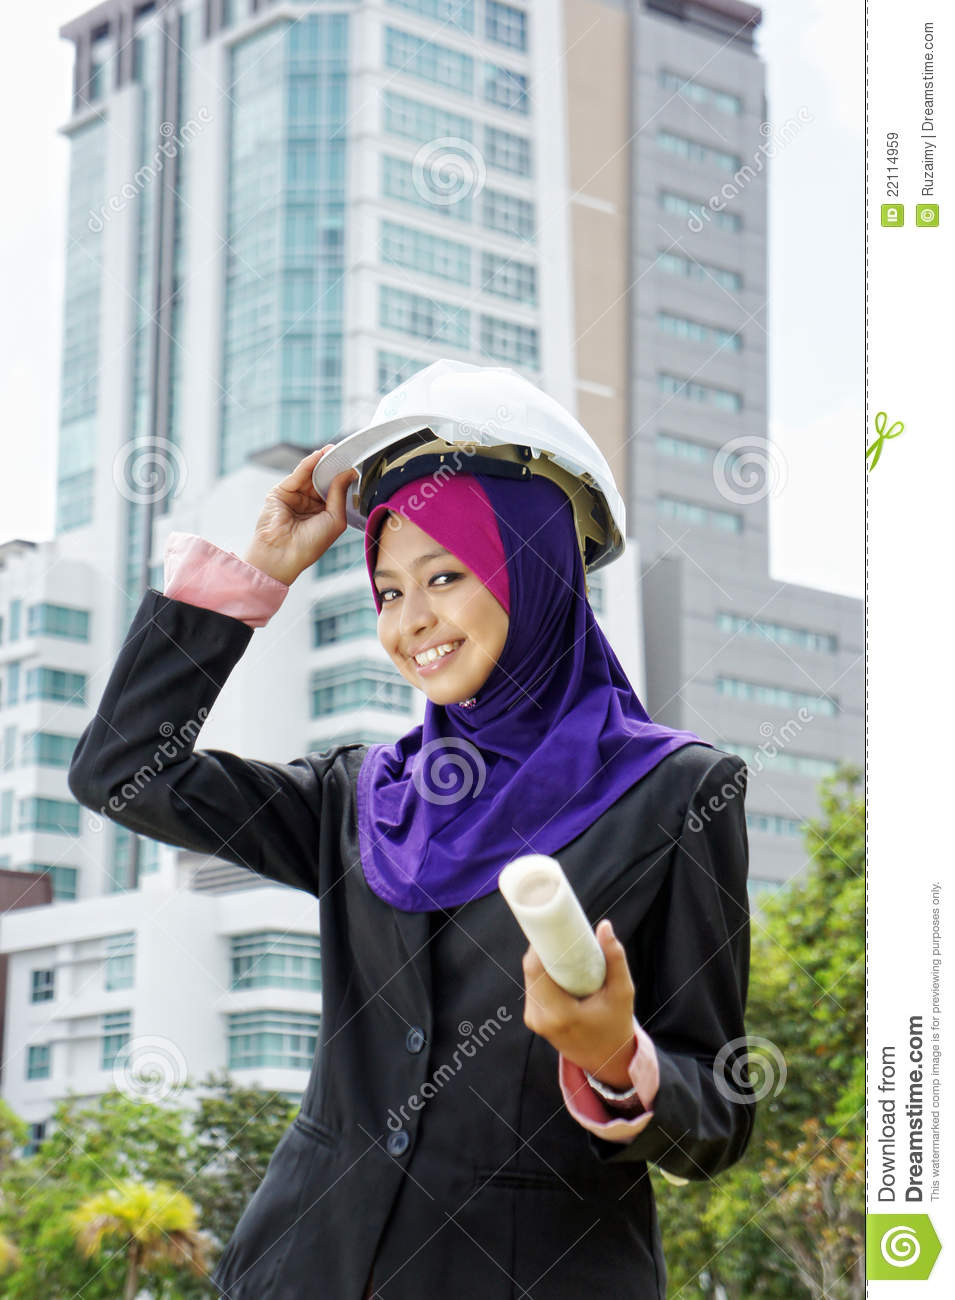 bhopal single muslim girls Muslim bhopal matrimonial muslim bhopal is the group of those people who believe in islam and are settled in bhopal, the capital of madhya pradesh.